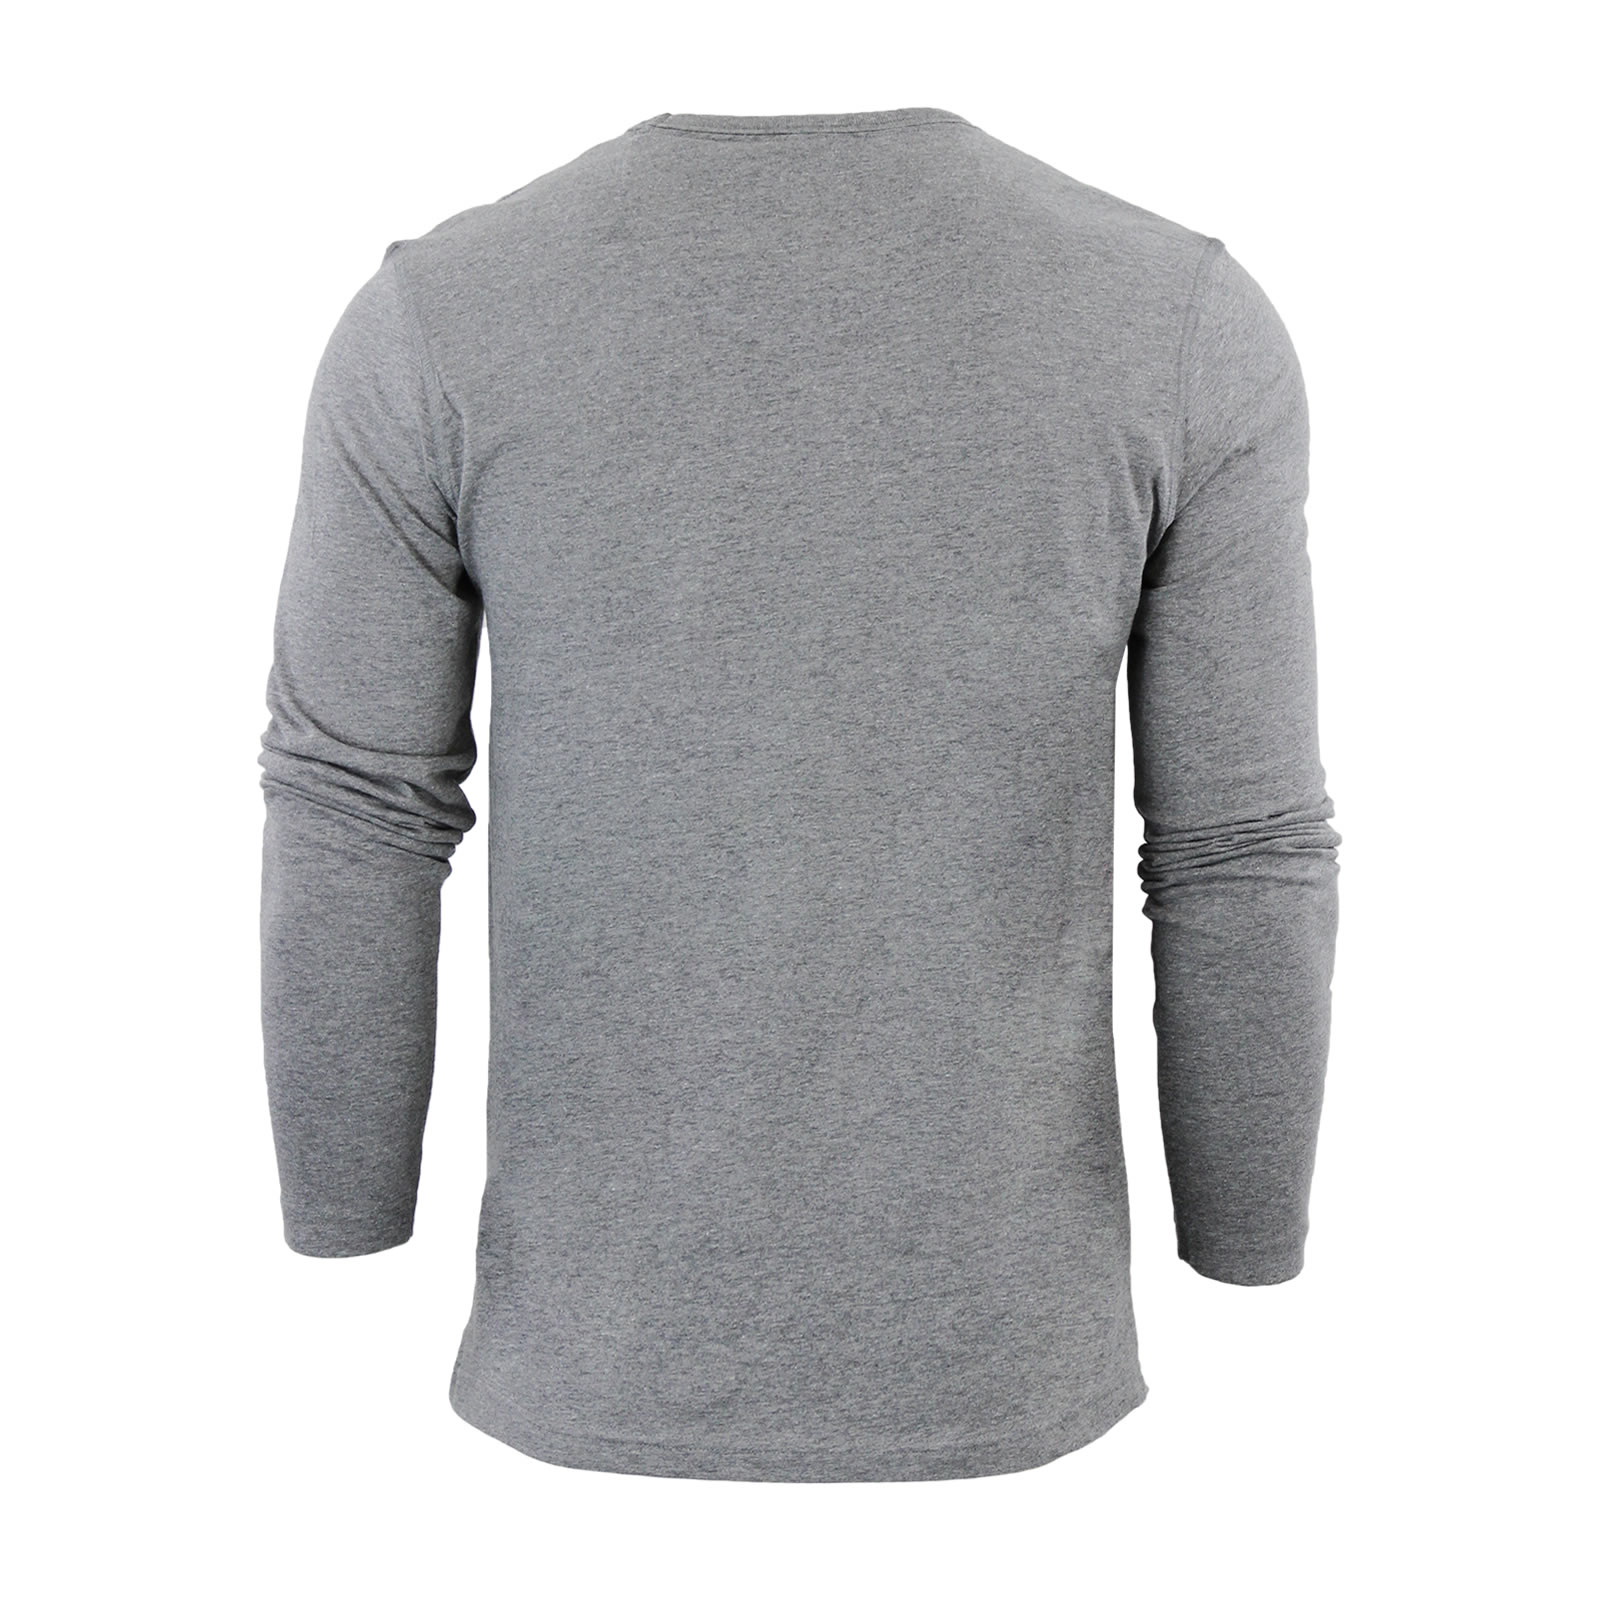 Mens-T-Shirt-by-Brave-Soul-Prague-Cotton-Long-Sleeved-Crew-Neck-Casual-Top thumbnail 12